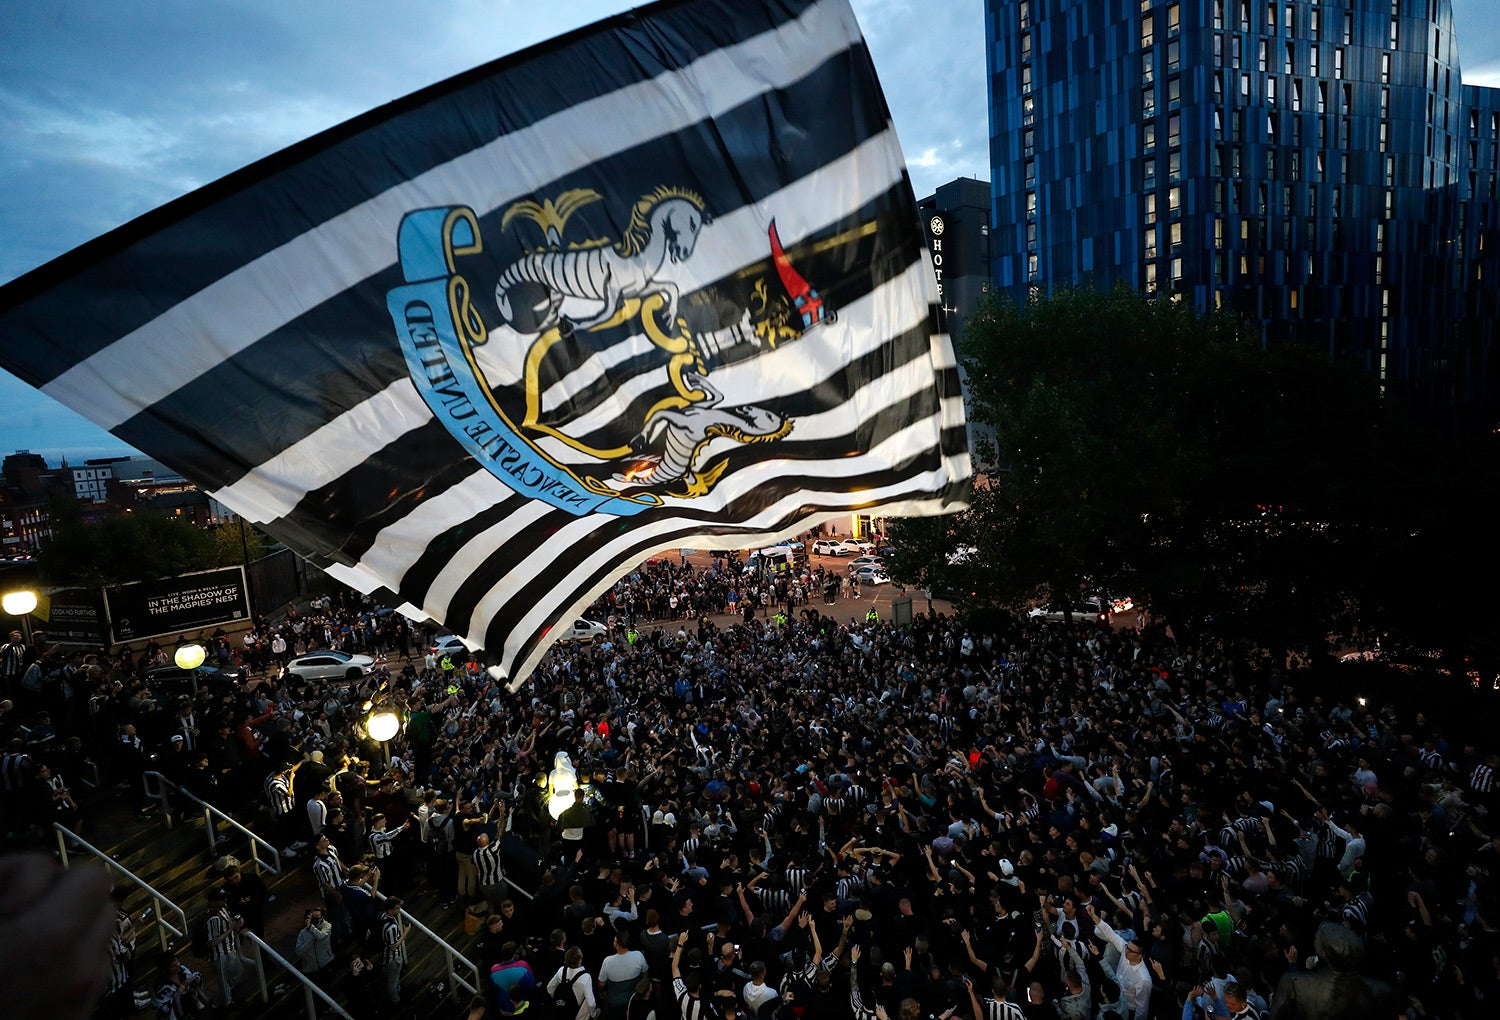 Saudi's Takeover of Newcastle F.C. a Wake-Up Call on Rights